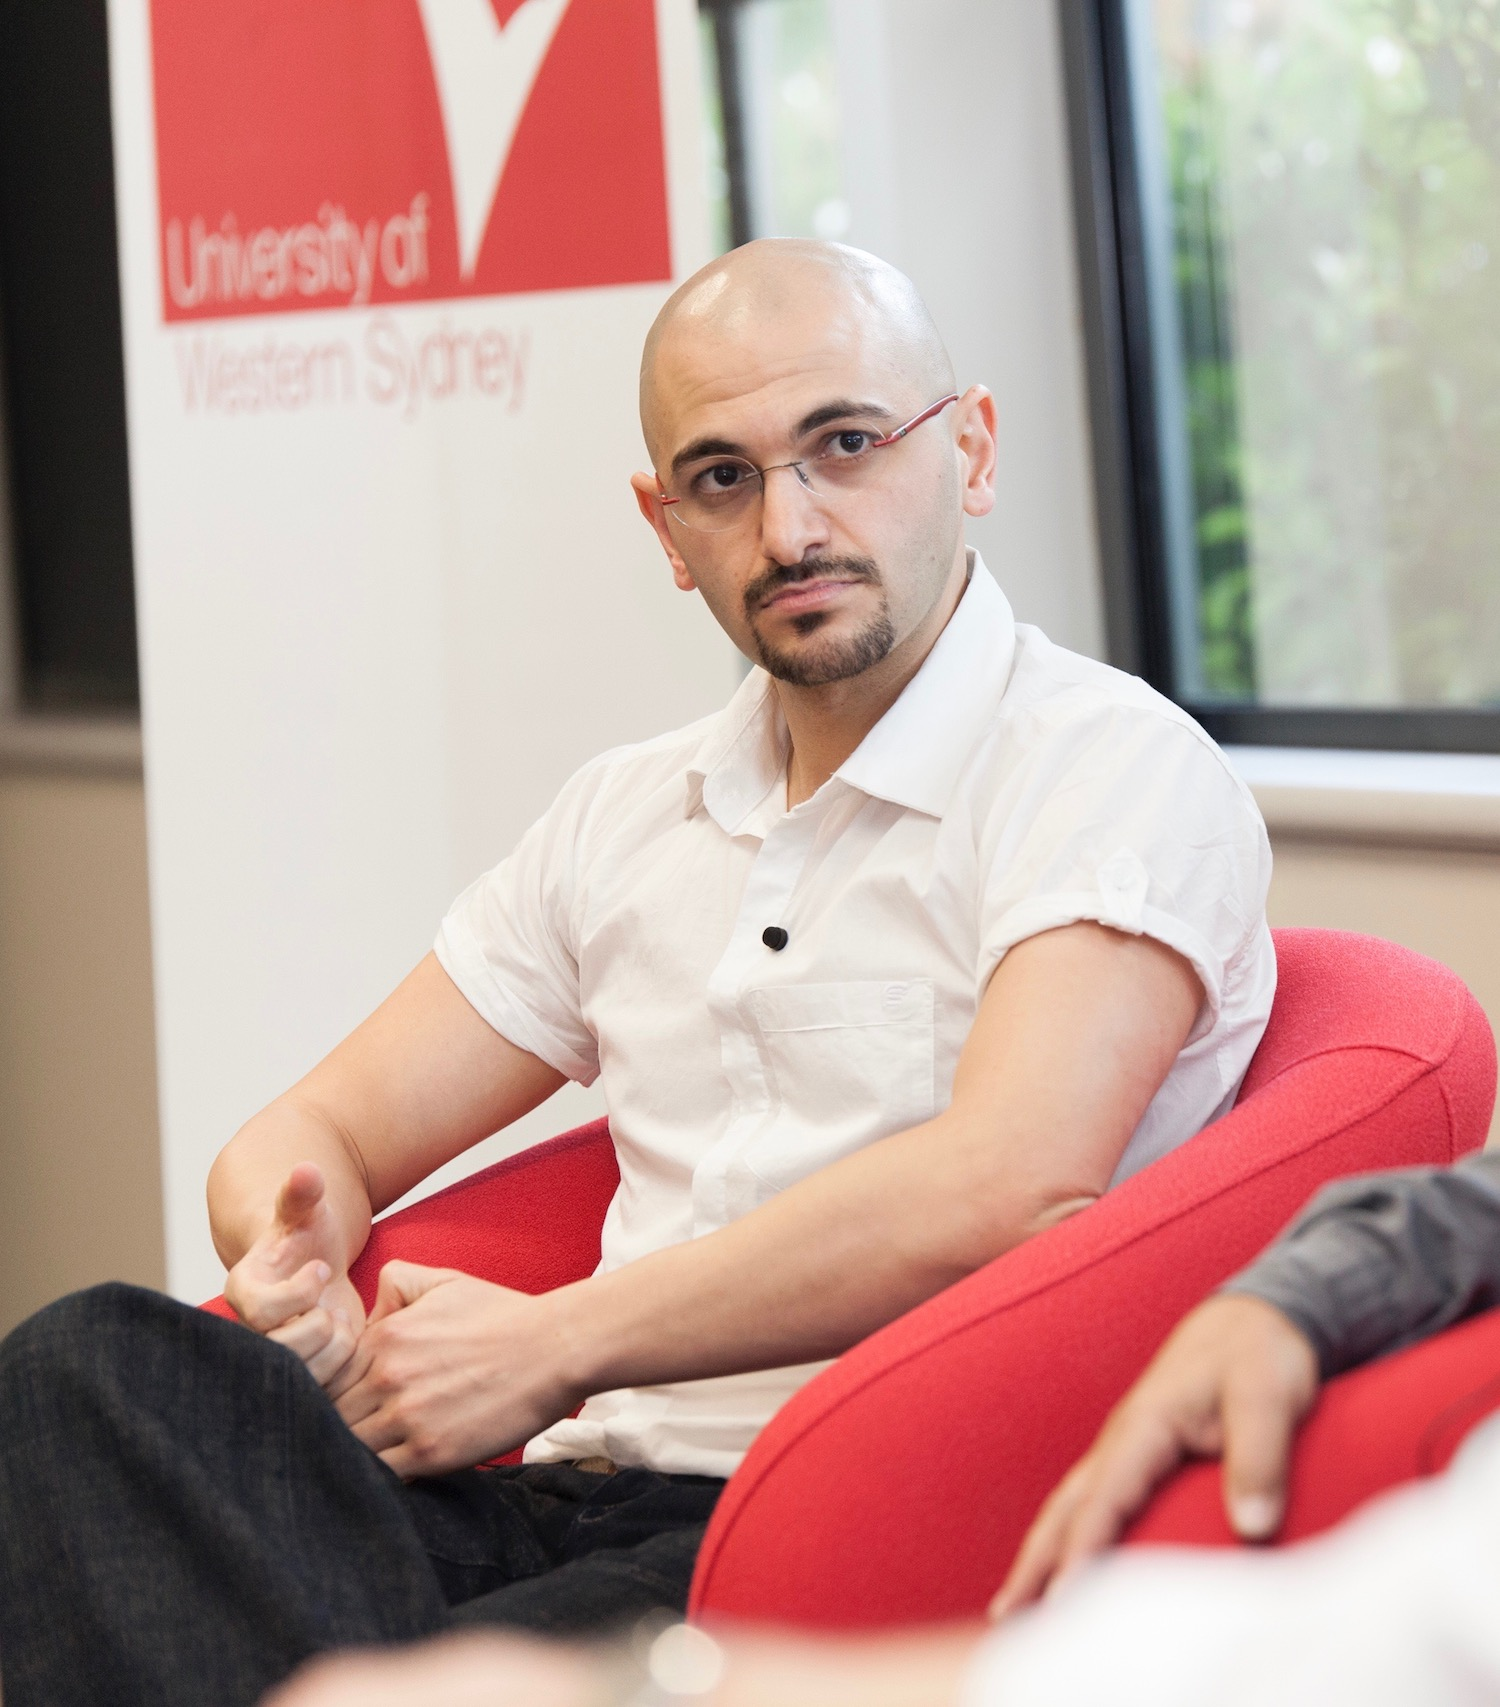 Michael Mohammed Ahmad sits in a red armchair at an academic event